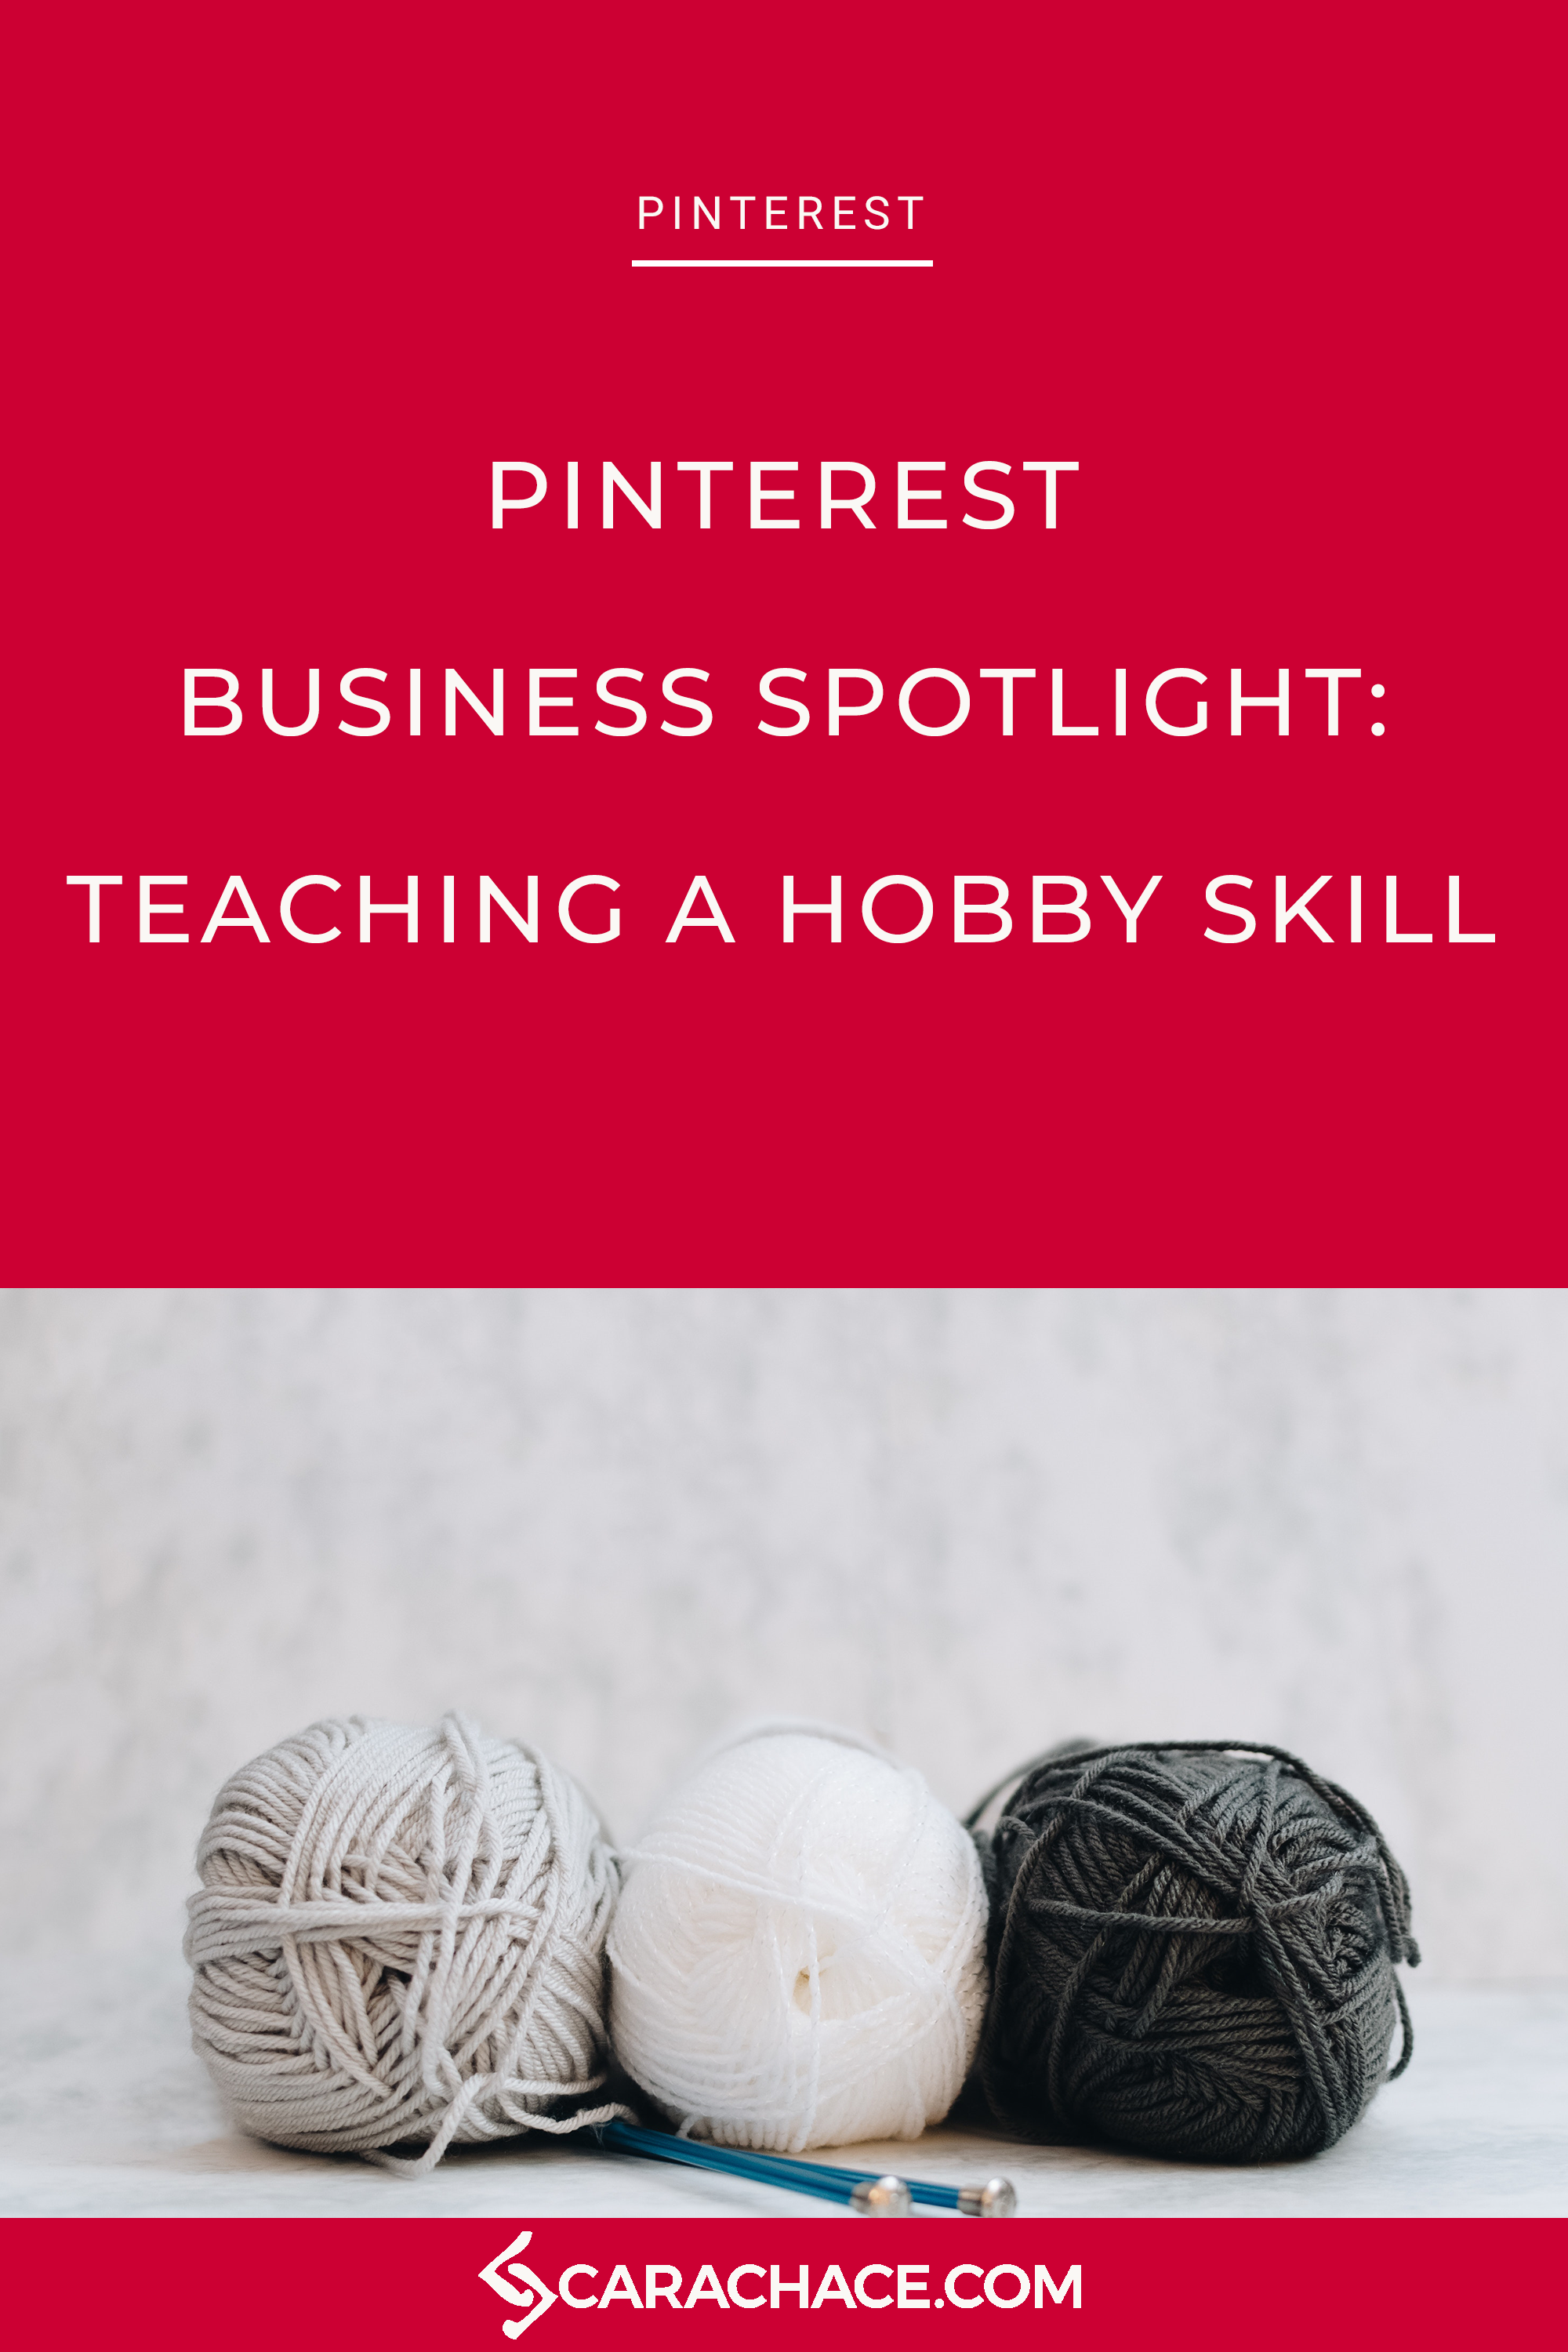 When you're using Pinterest to teach a hobby skill, like knitting, best practices also apply. Learn how a small business owner teaching beginner knitters can improve her profile. #pinterestmarketing #pintereststrategy #digitalmarketing #smallbusiness #carachace #rockstarceo